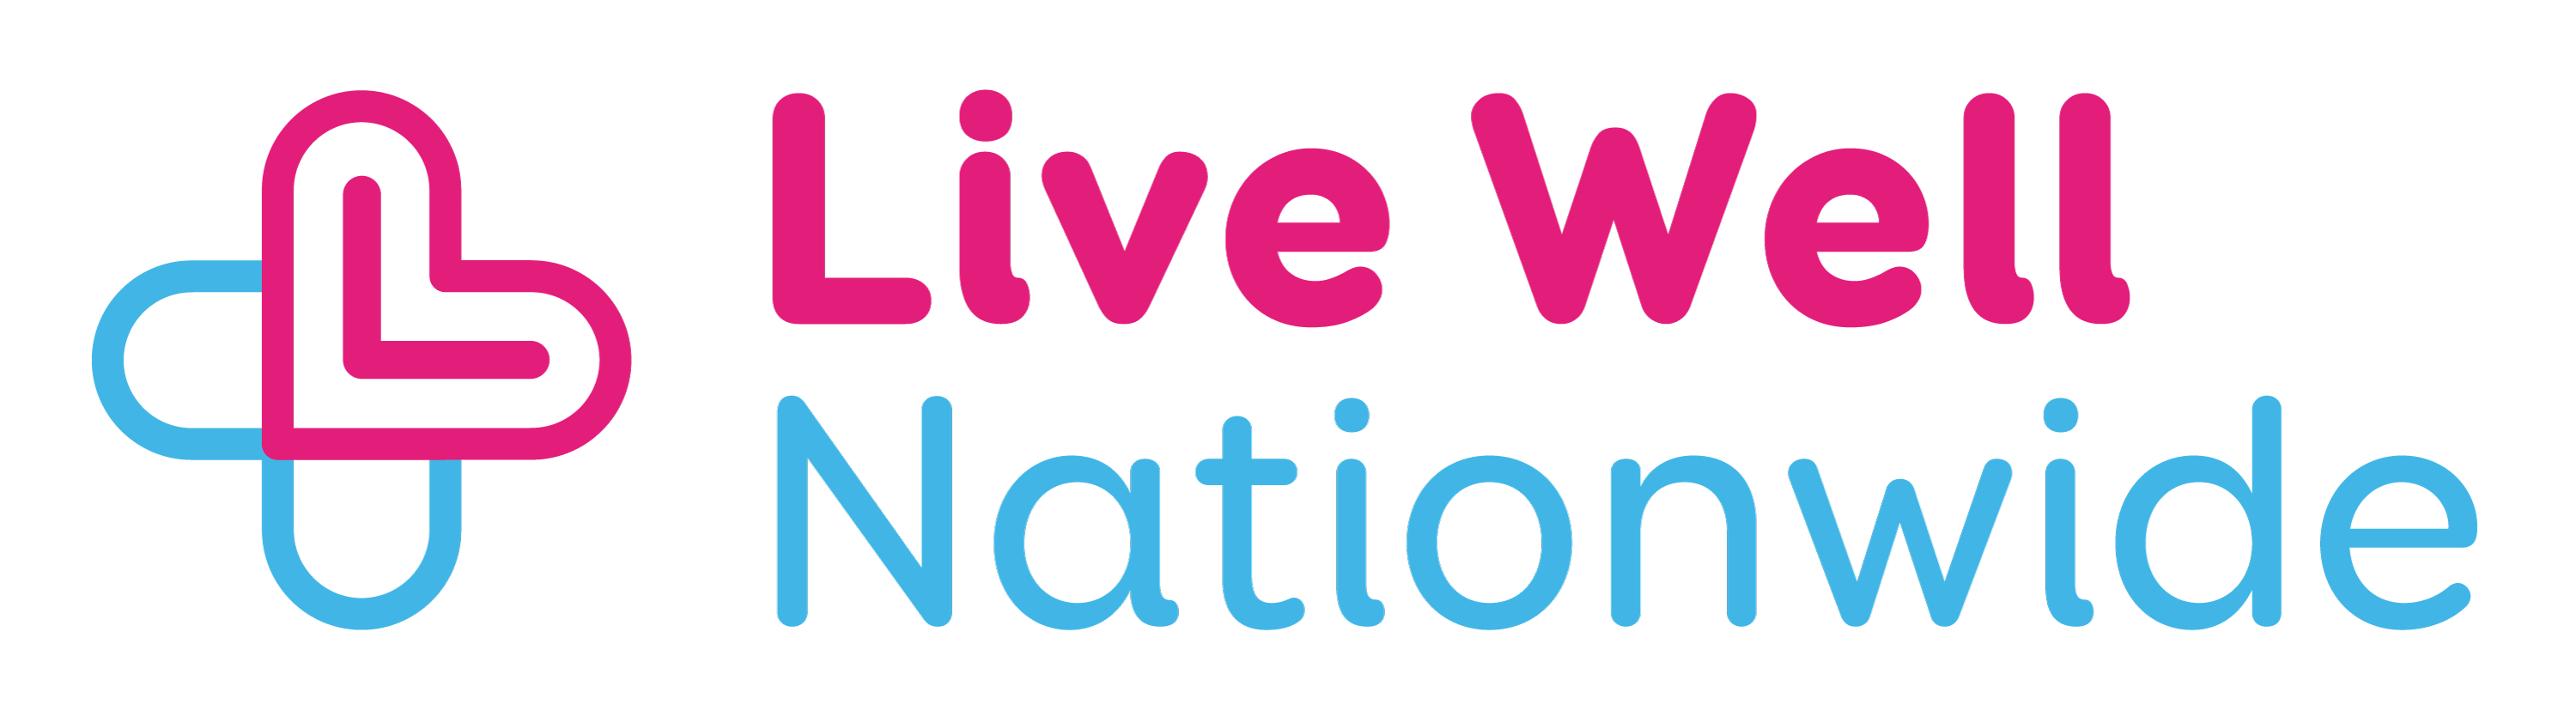 Live-Well-Nationwide-Logo